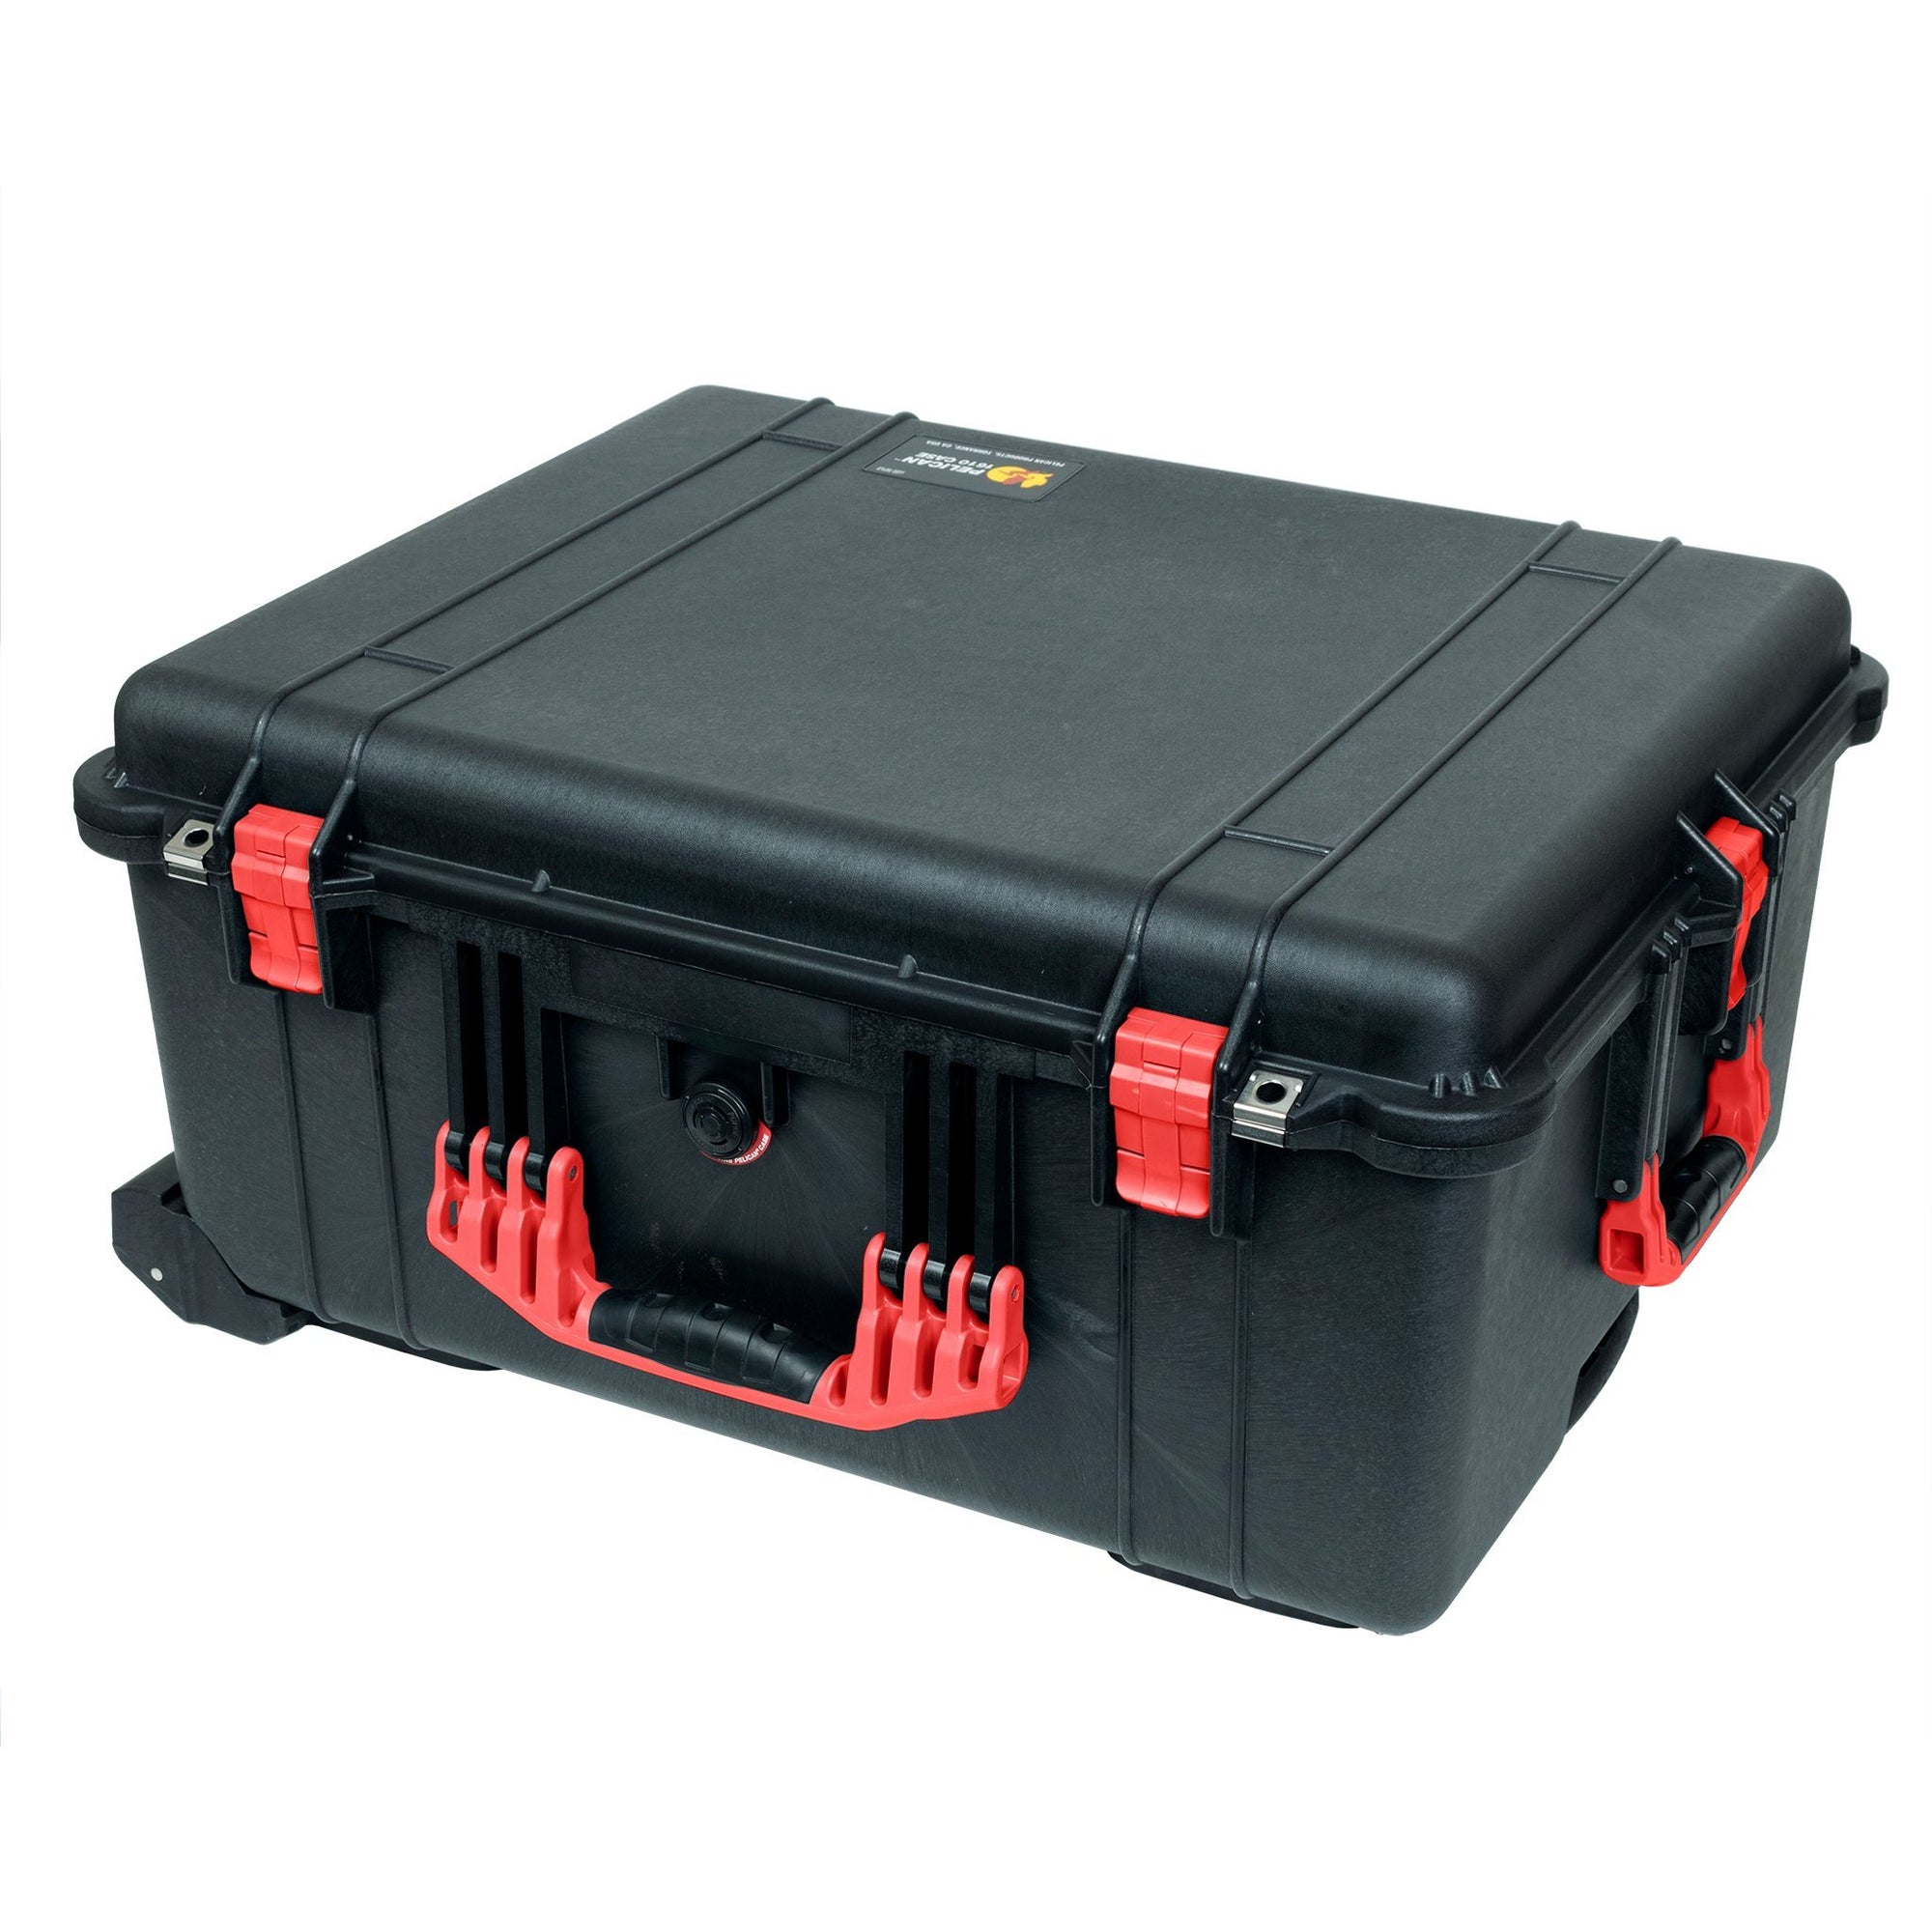 Pelican 1610 Case, Black with Red Handles and Latches